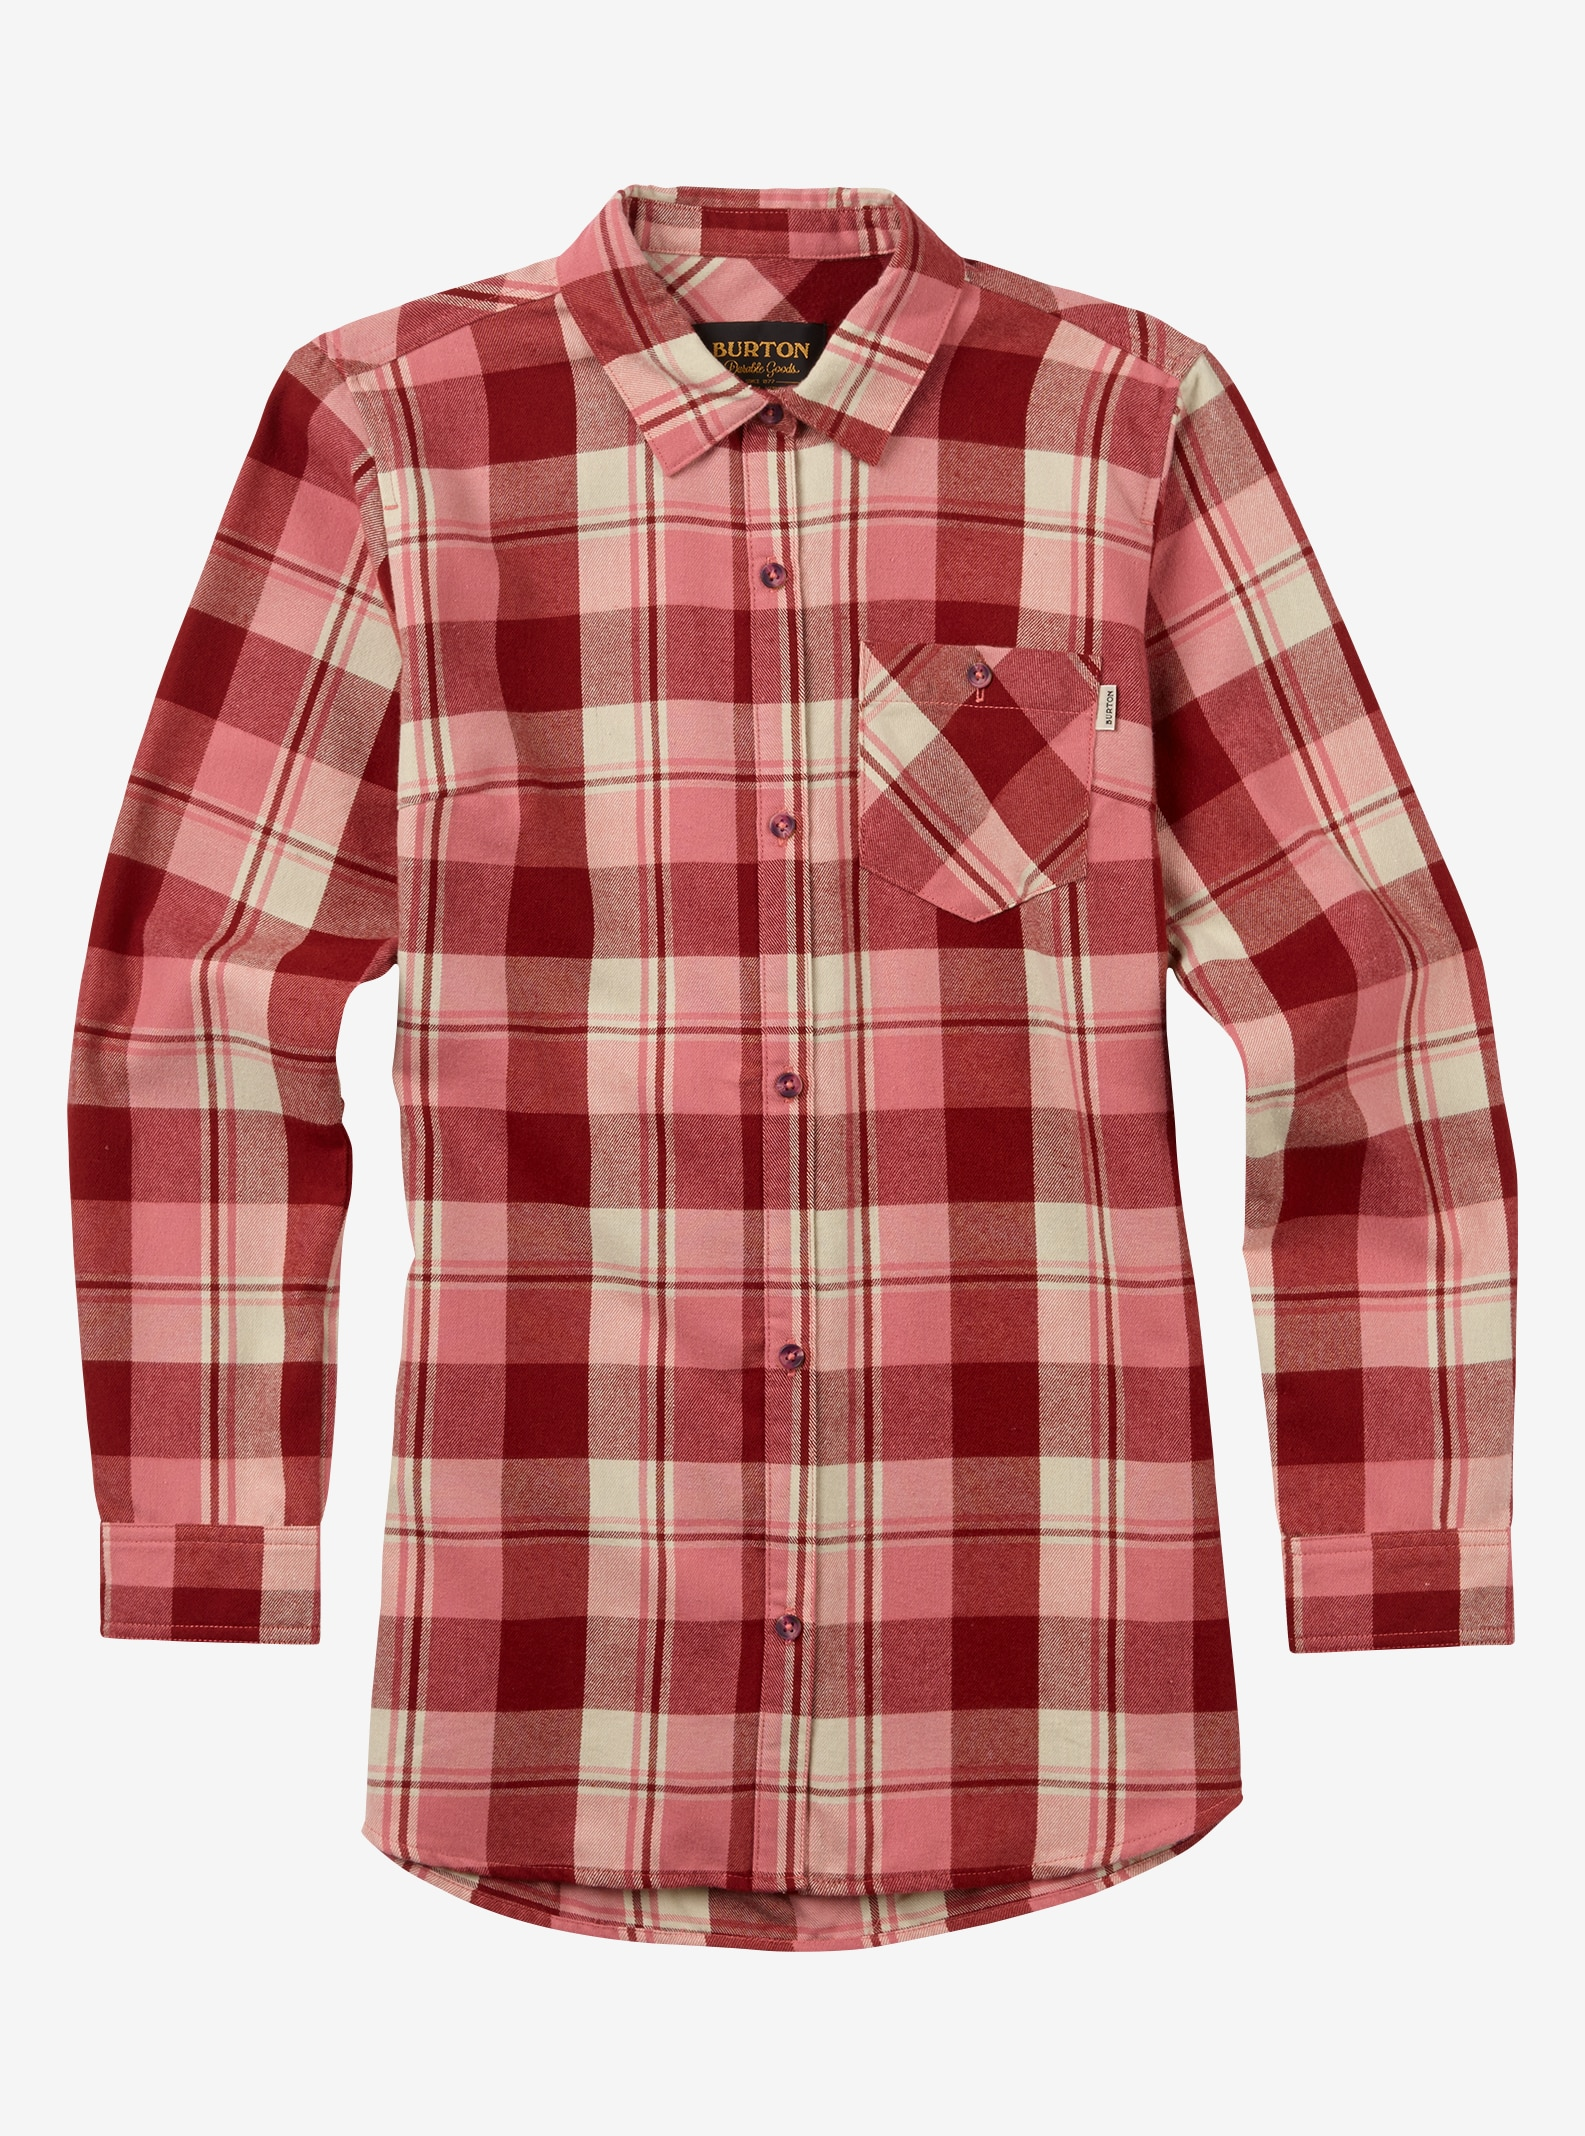 Women's Burton Grace Tech Flannel shown in Dusty Rose 77 Plaid